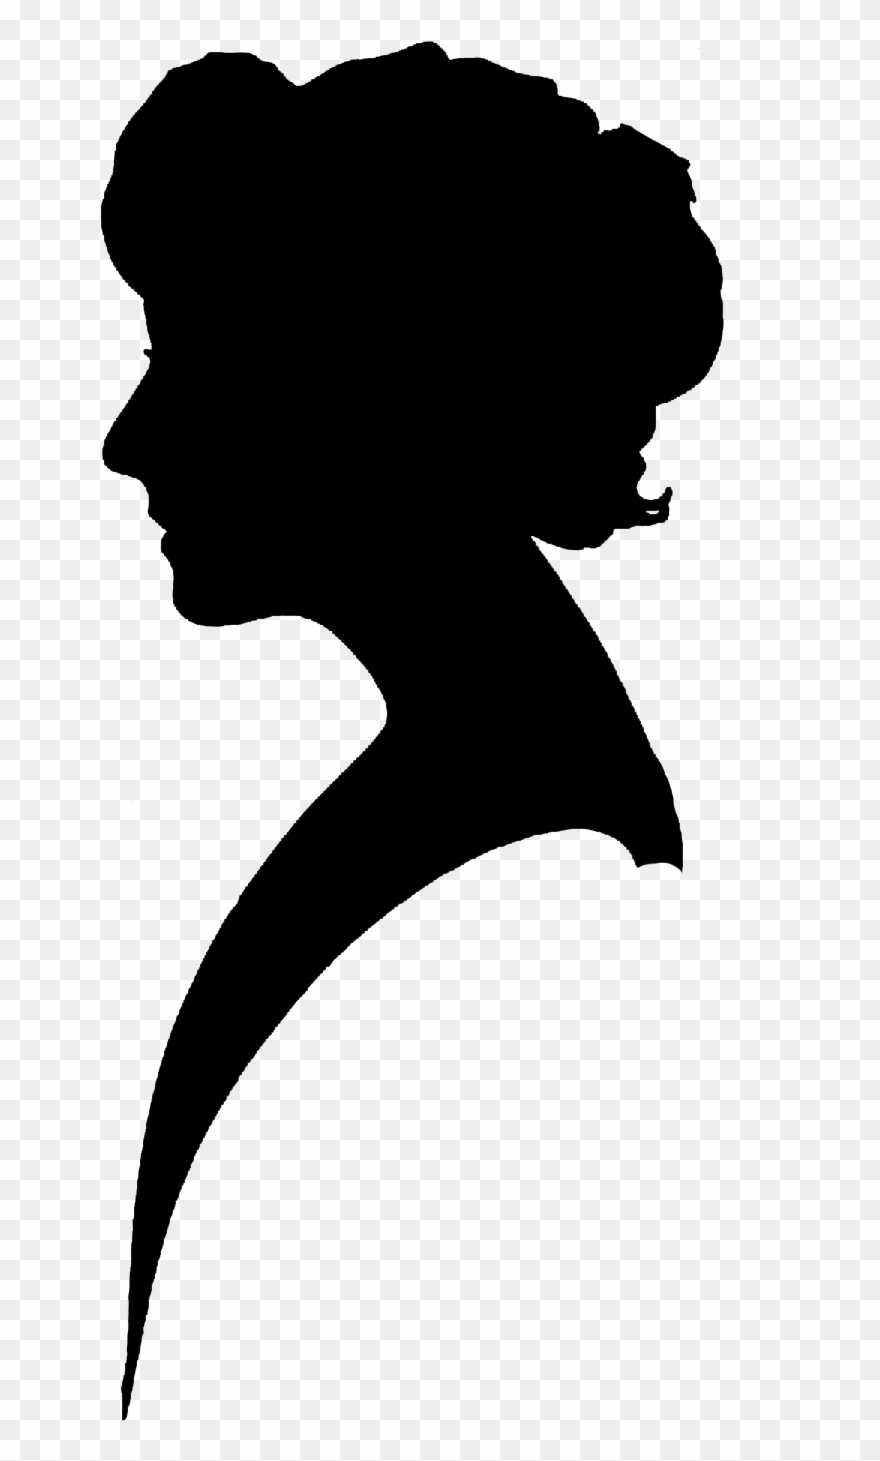 Silhouette Clipart Vintage Woman Silhouette Free Silhouette.